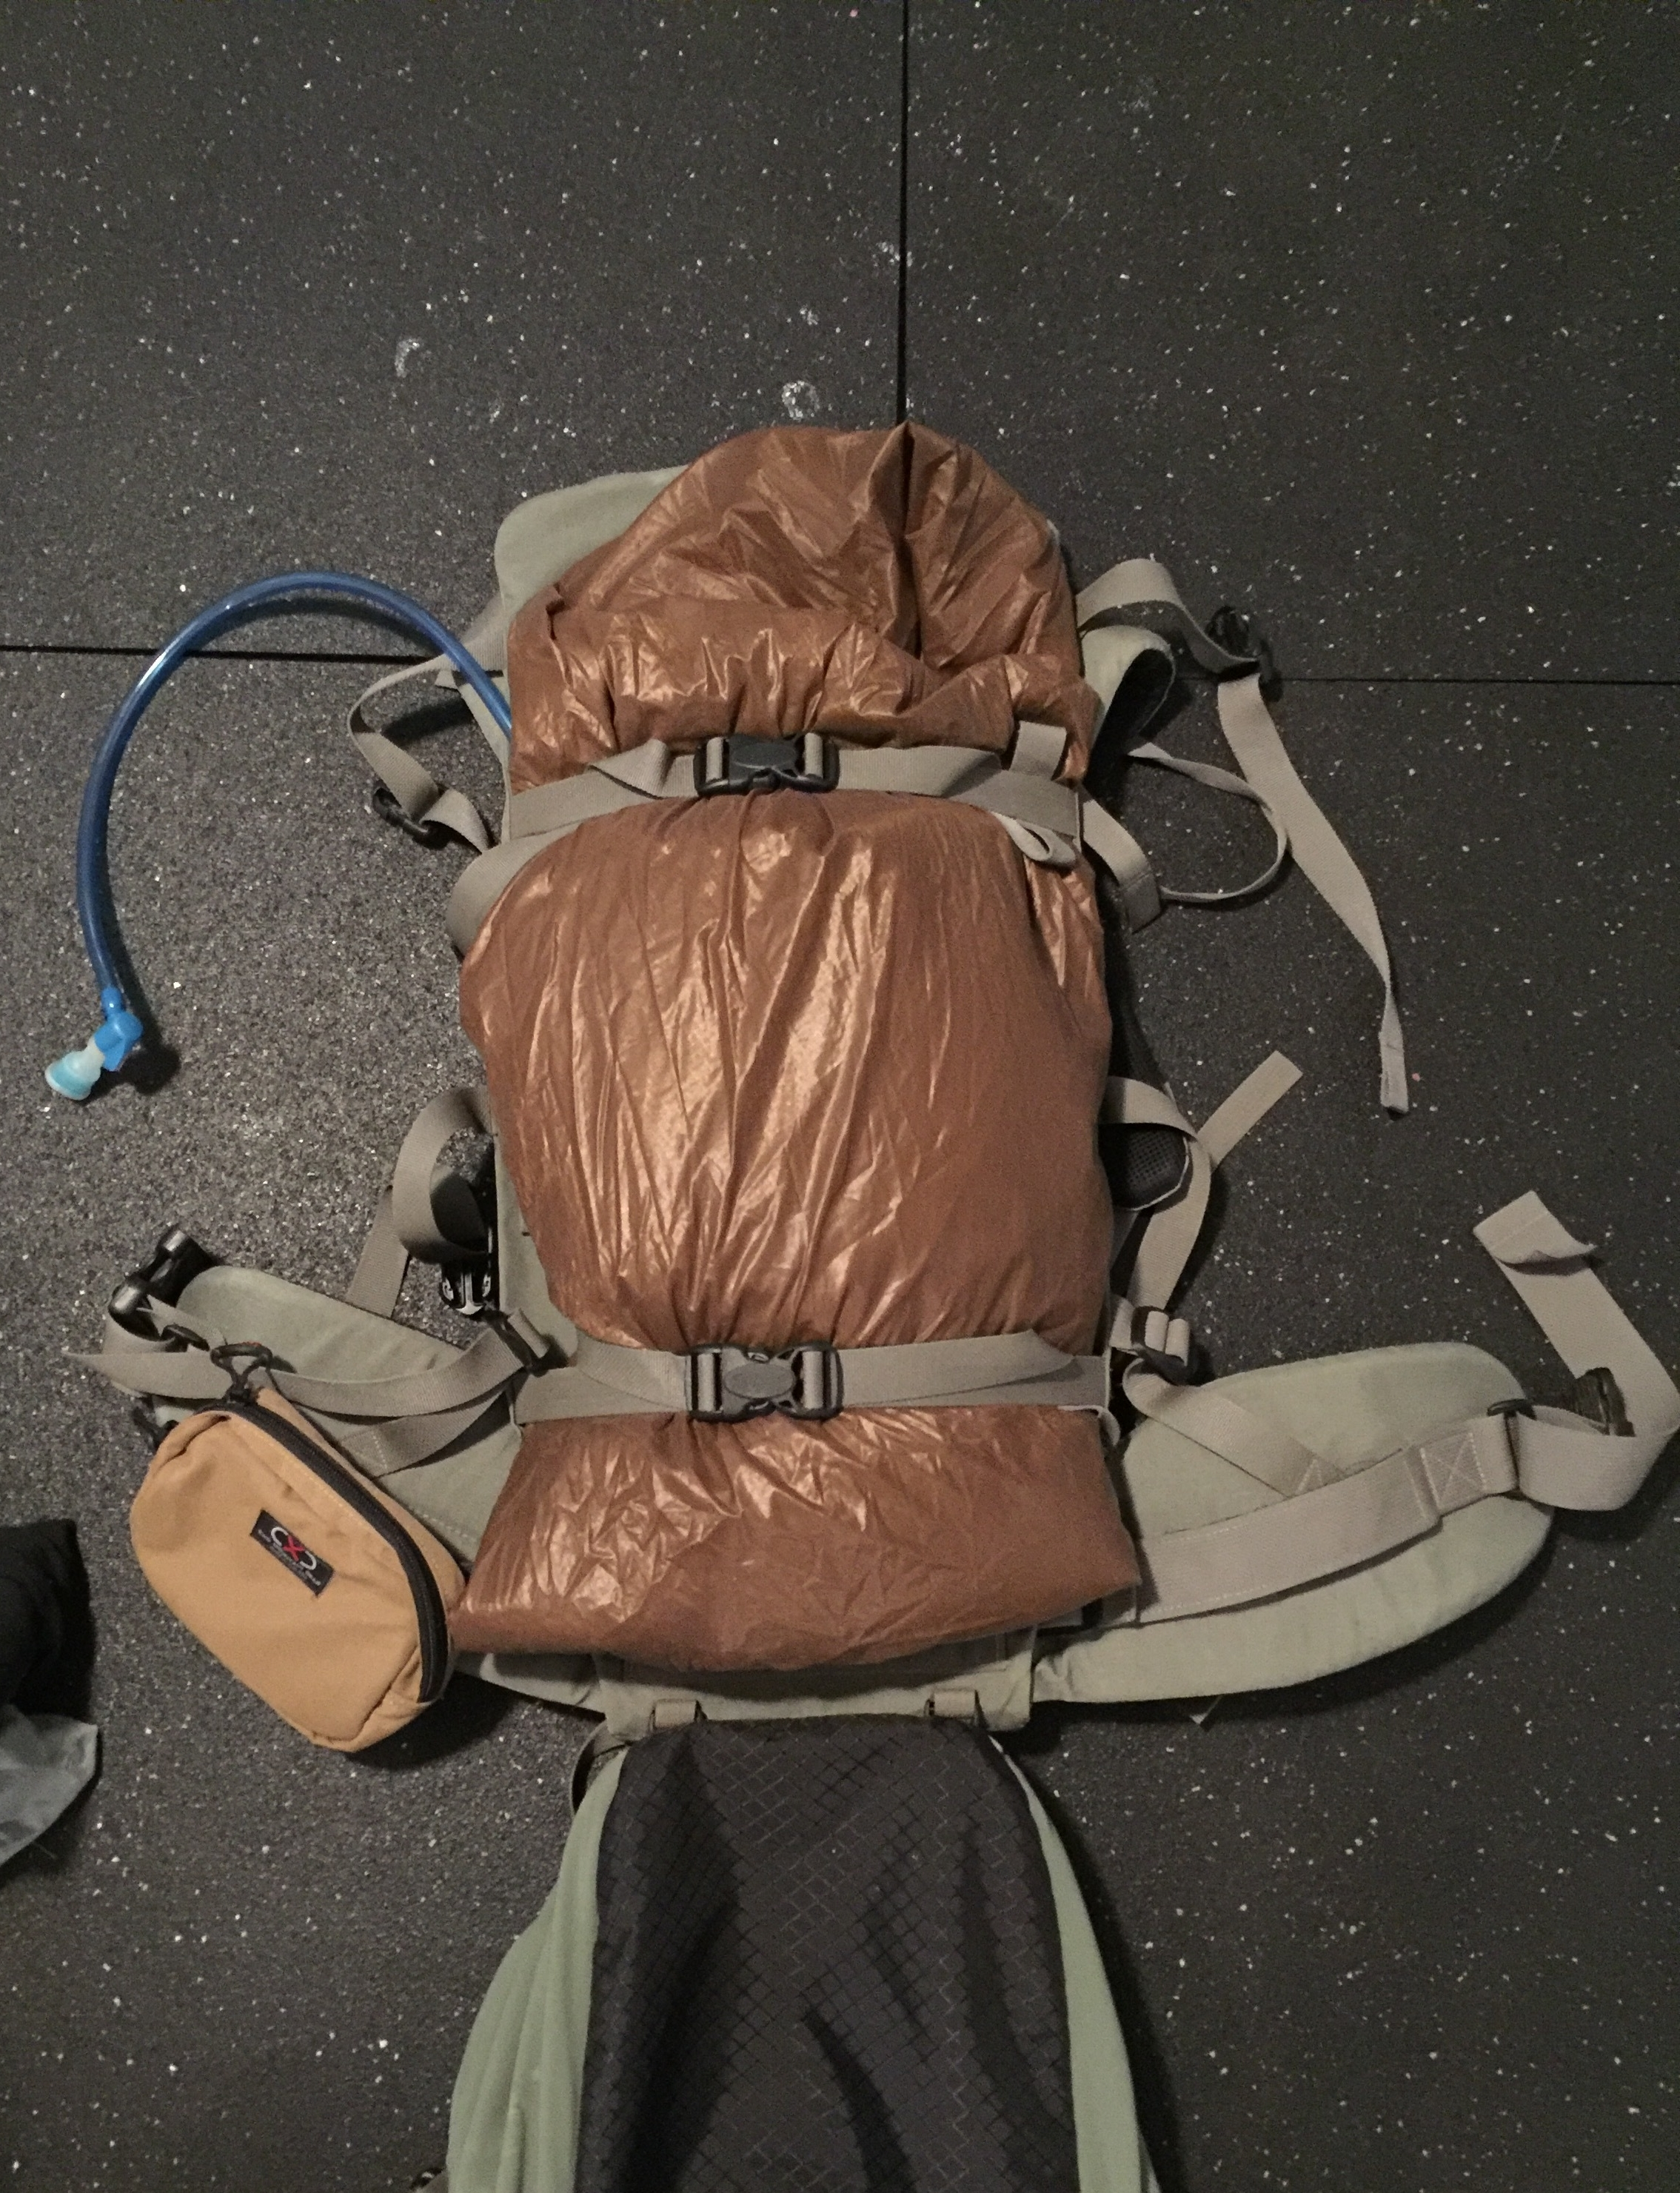 This is how I carry my tent. I fold it up and stash it on the load shelf of my backpack. I can save tons of room inside my pack doing it this way! Sorry for the Crocs creeping in the the shot...yeah..I wear Crocs in the backcountry...and around the house!